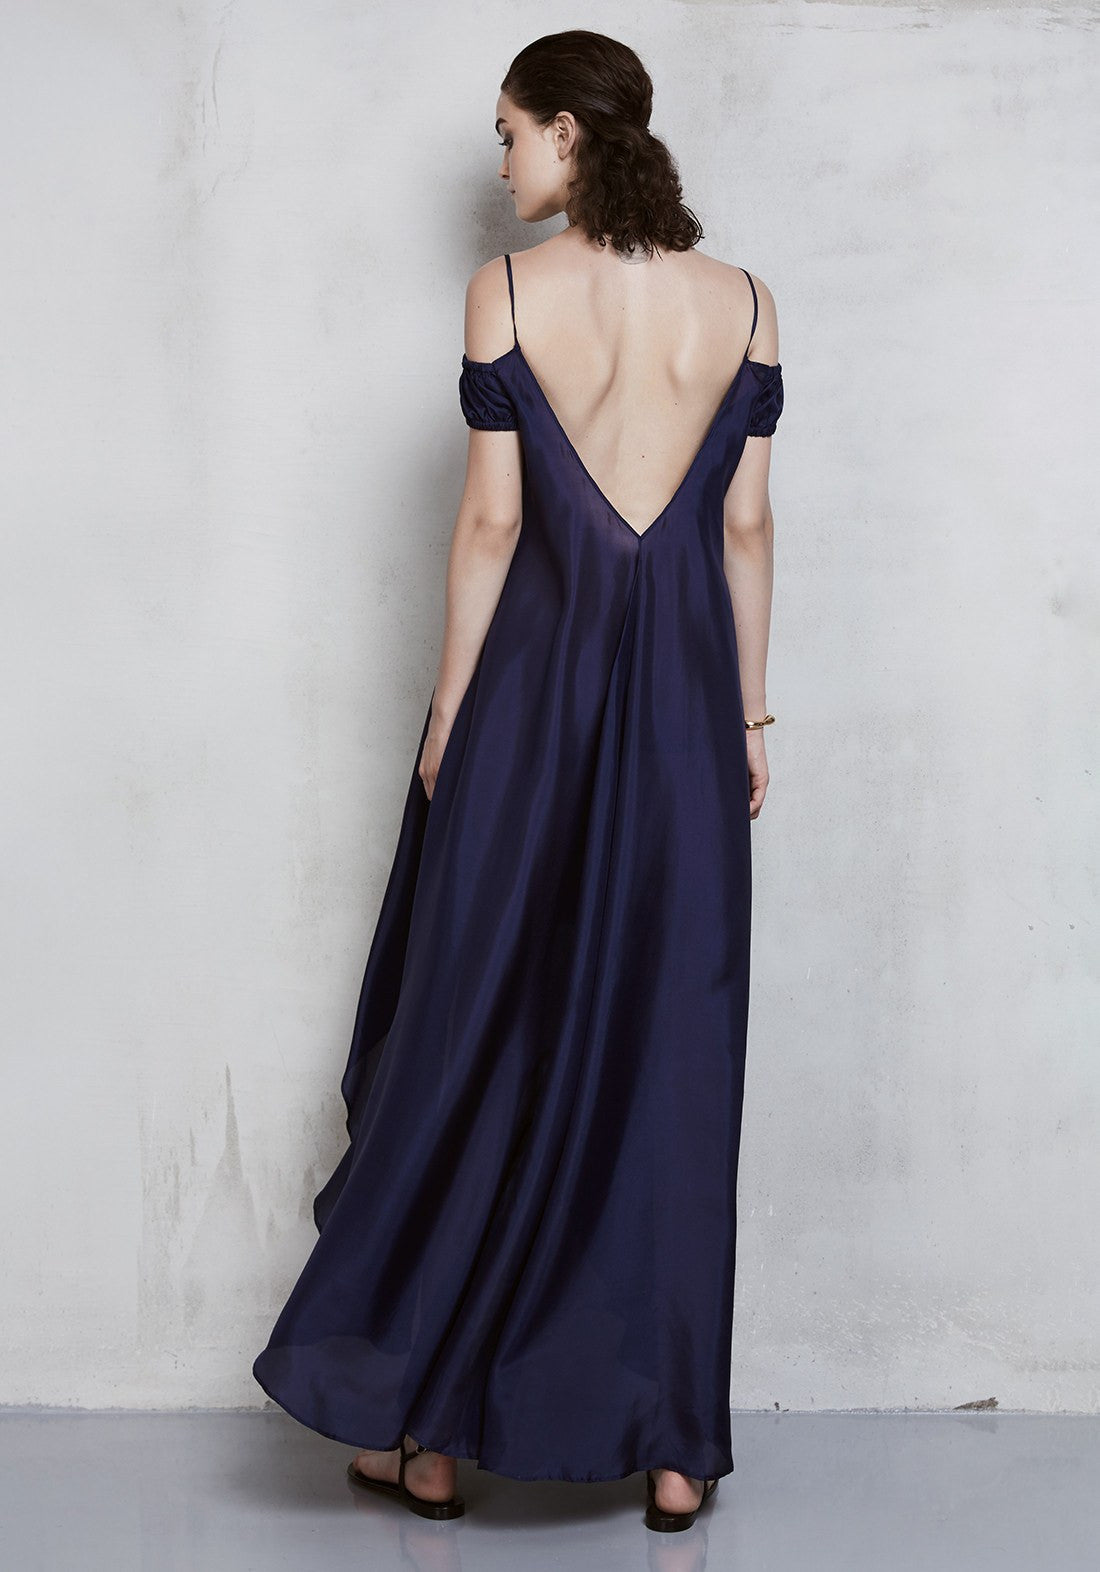 Wanderlust Off the Shoulder Long Dress - I.D.Sarrieri